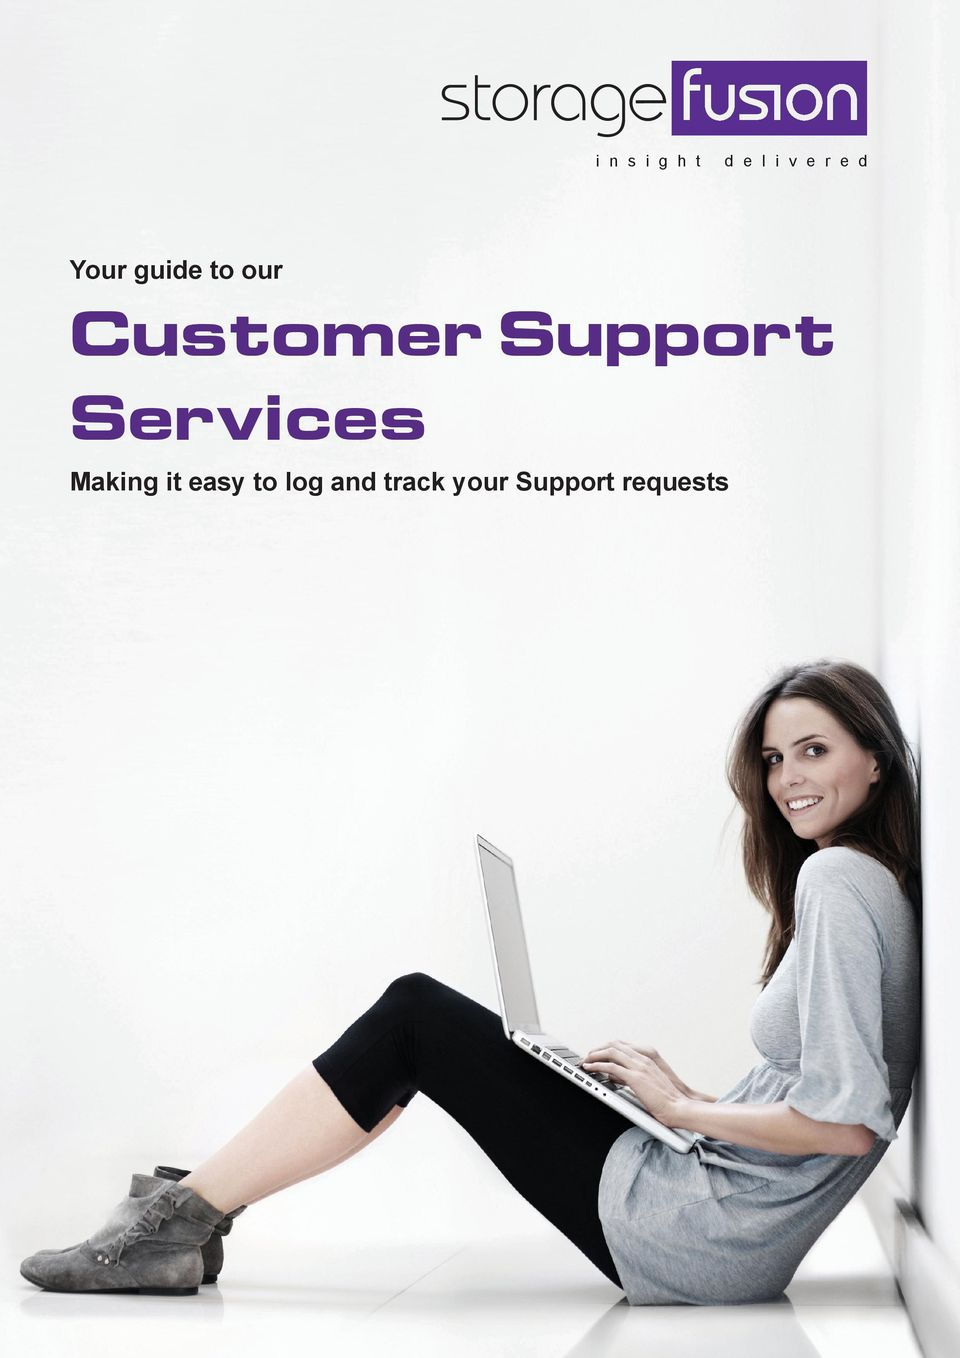 Support Services PANTONE 2597C CMYK 82 100 7 3 RGB 87 6 140